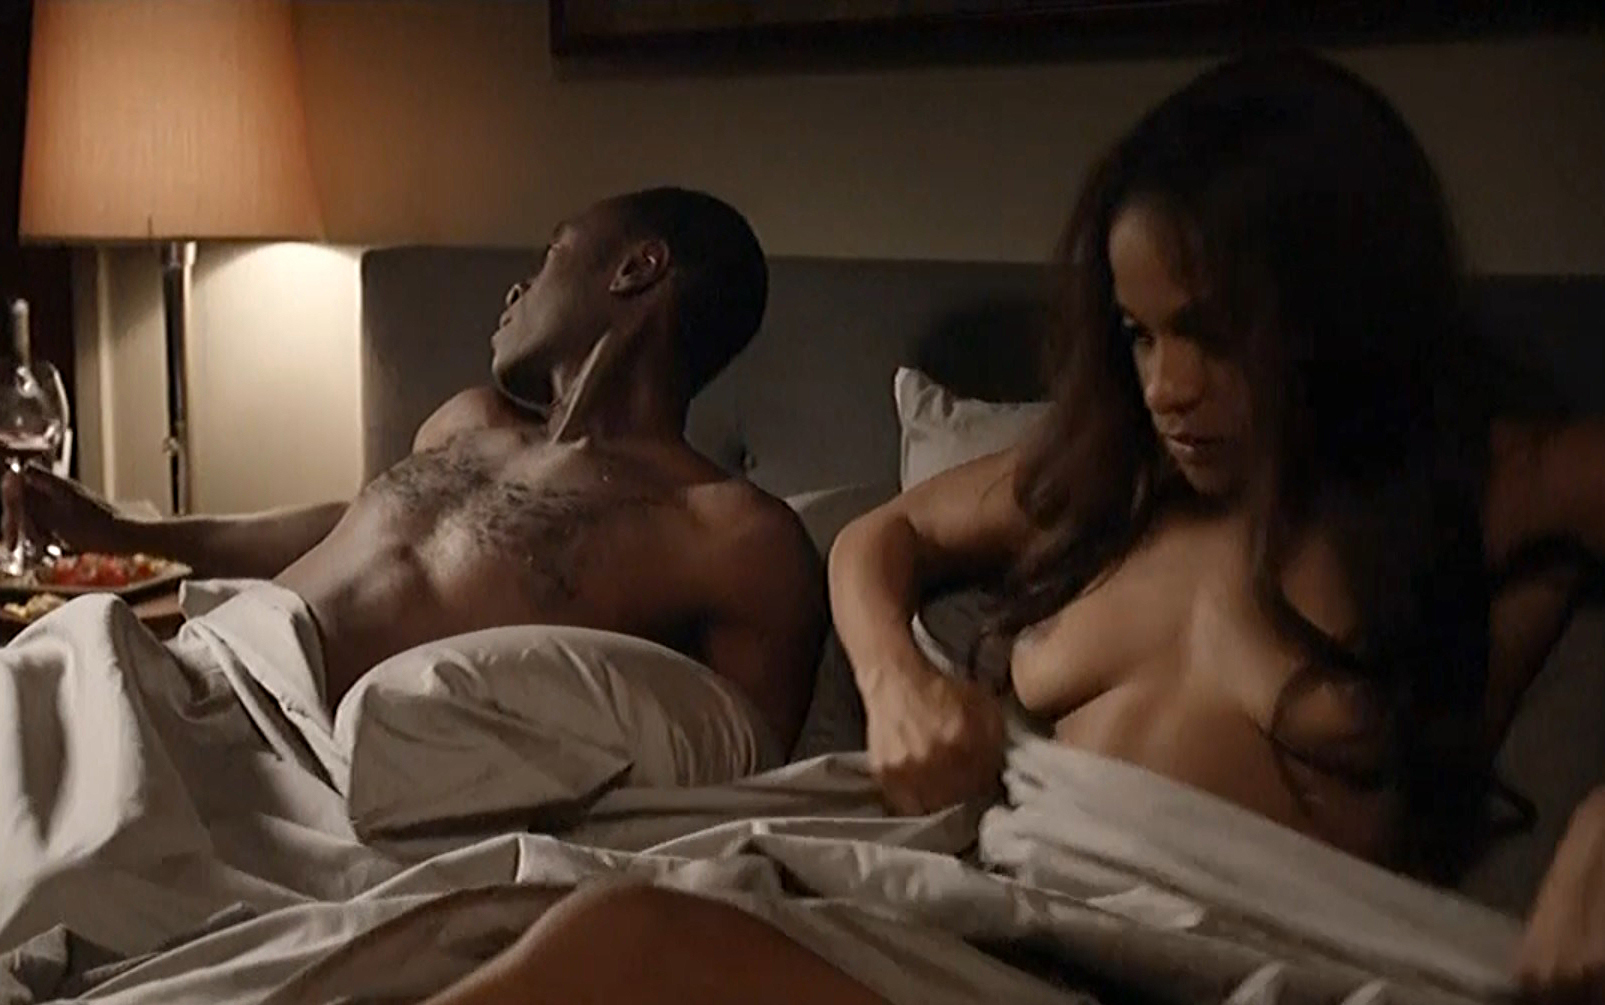 Pussy Megalyn Echikunwoke nude (15 photo), Topless, Leaked, Instagram, bra 2020